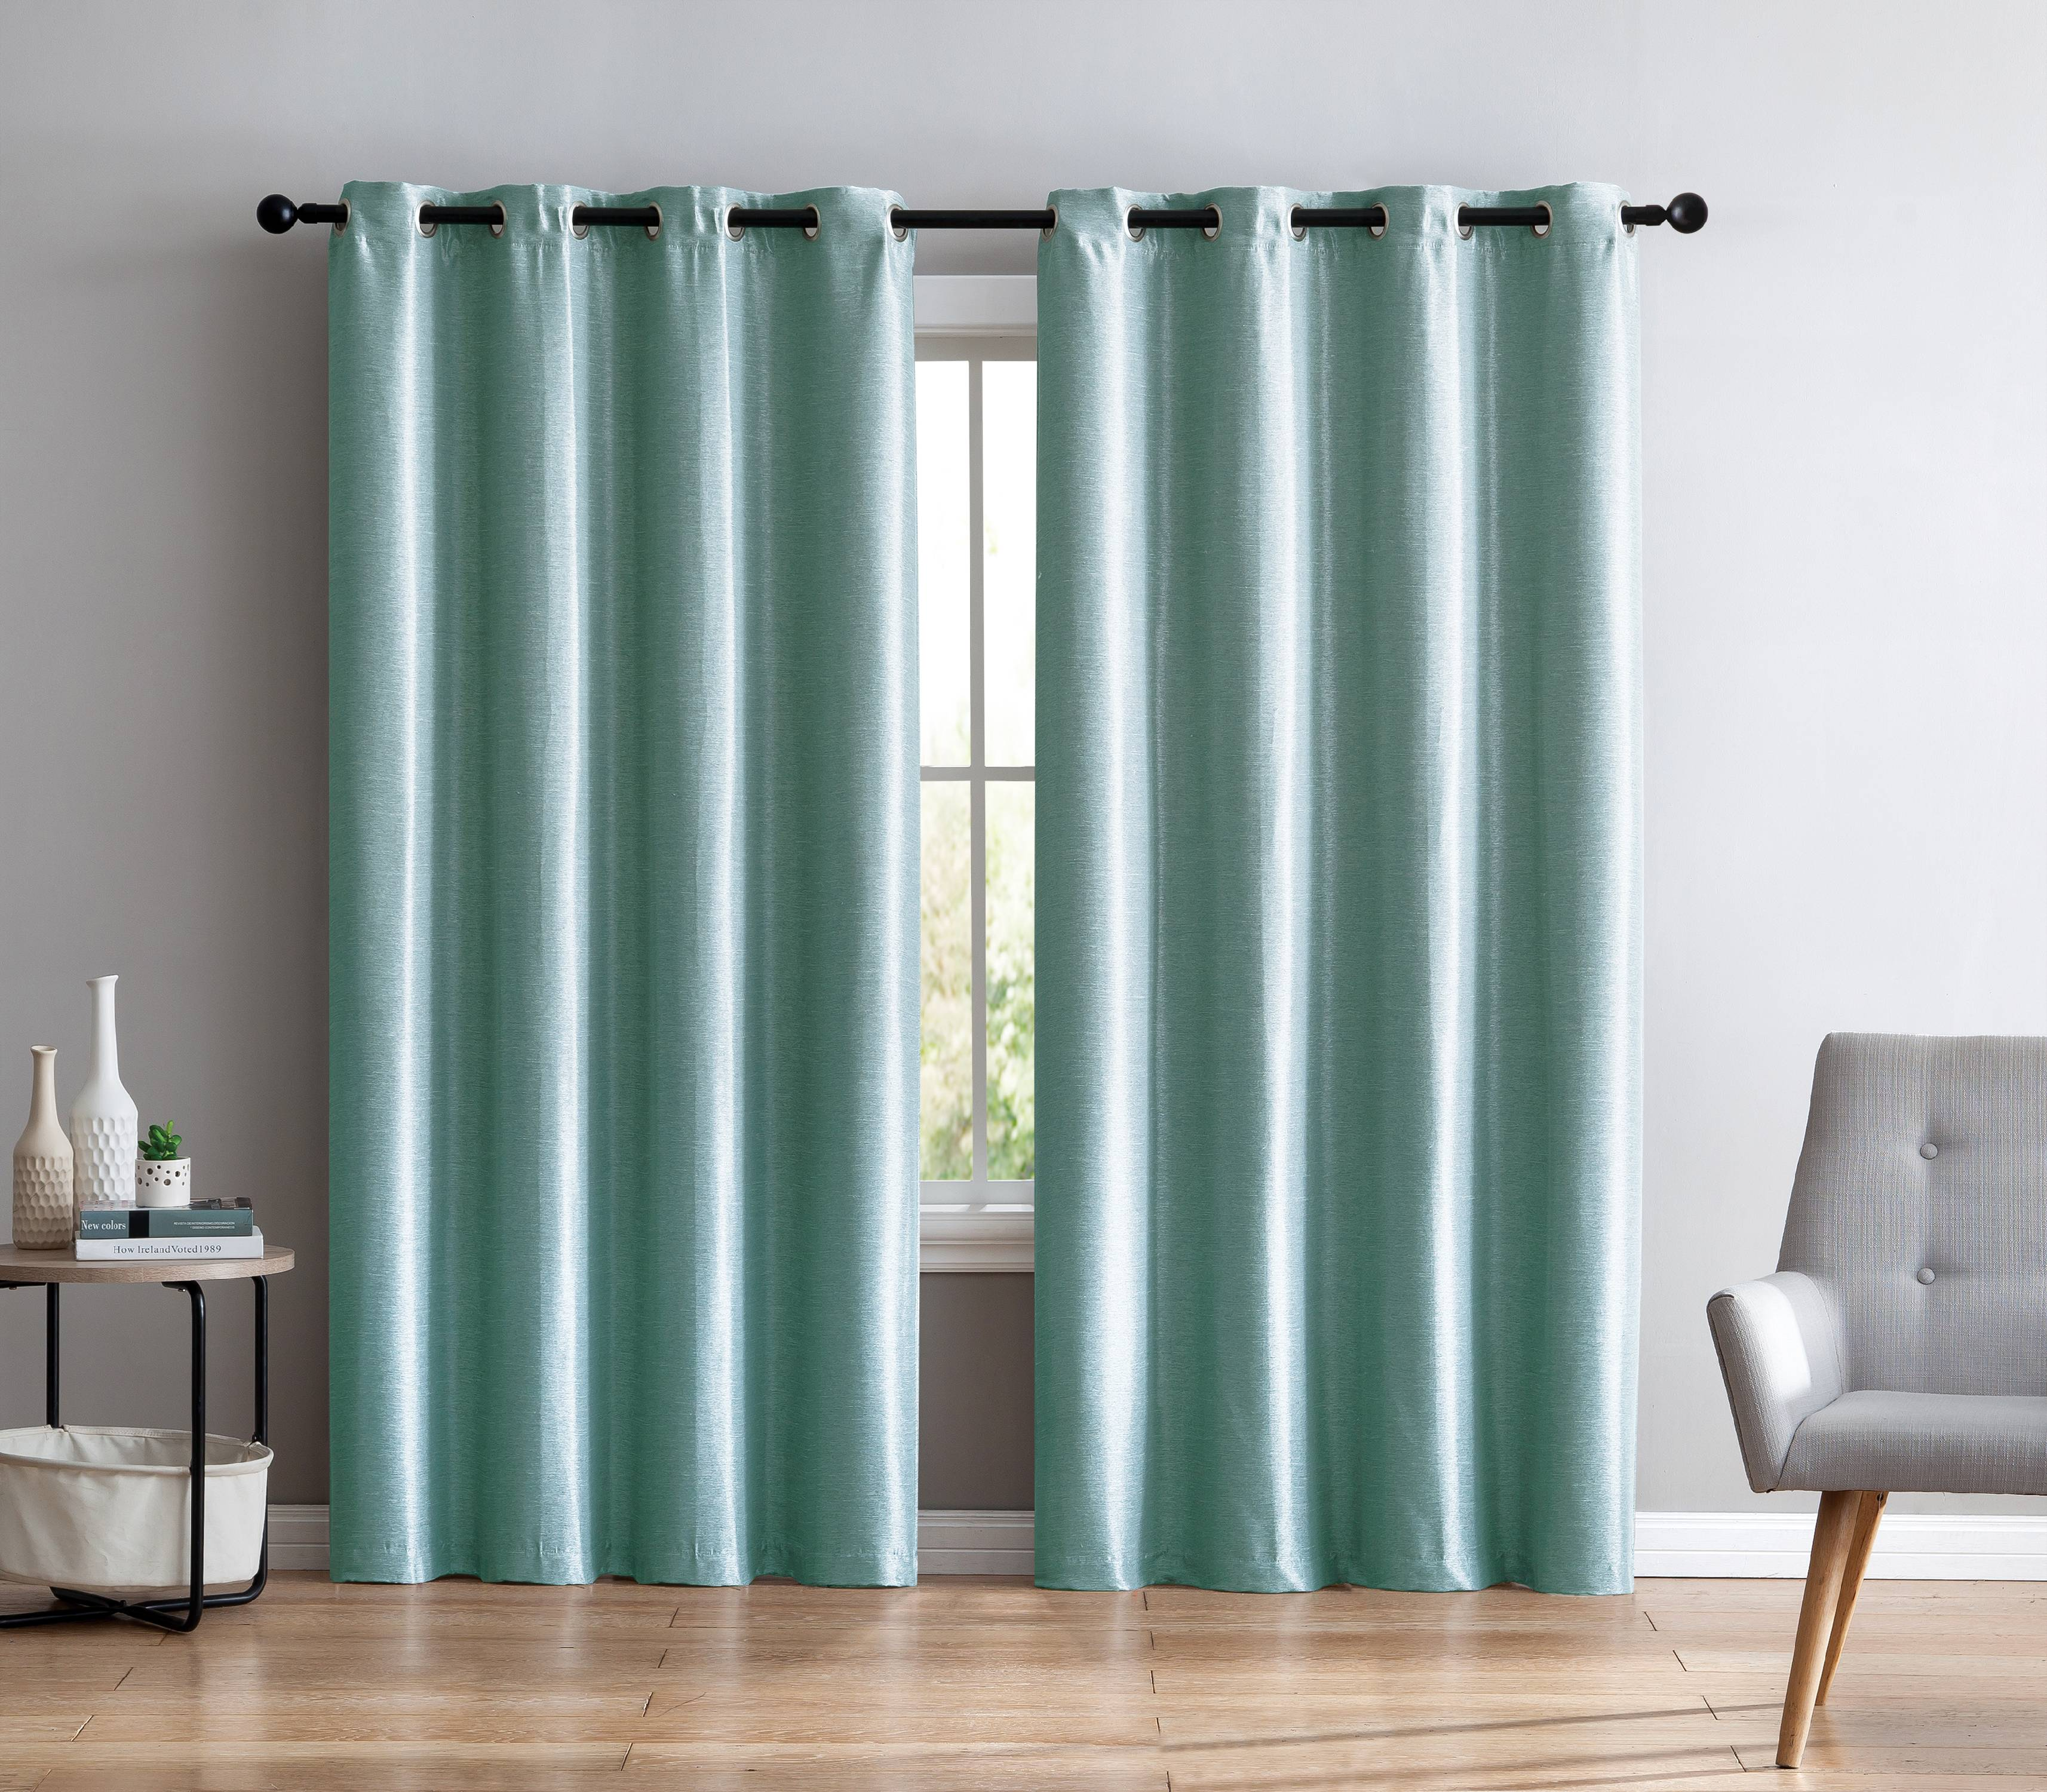 VCNY Home Sonia Faux Silk Grommet Curtain Panel, 54 X 84